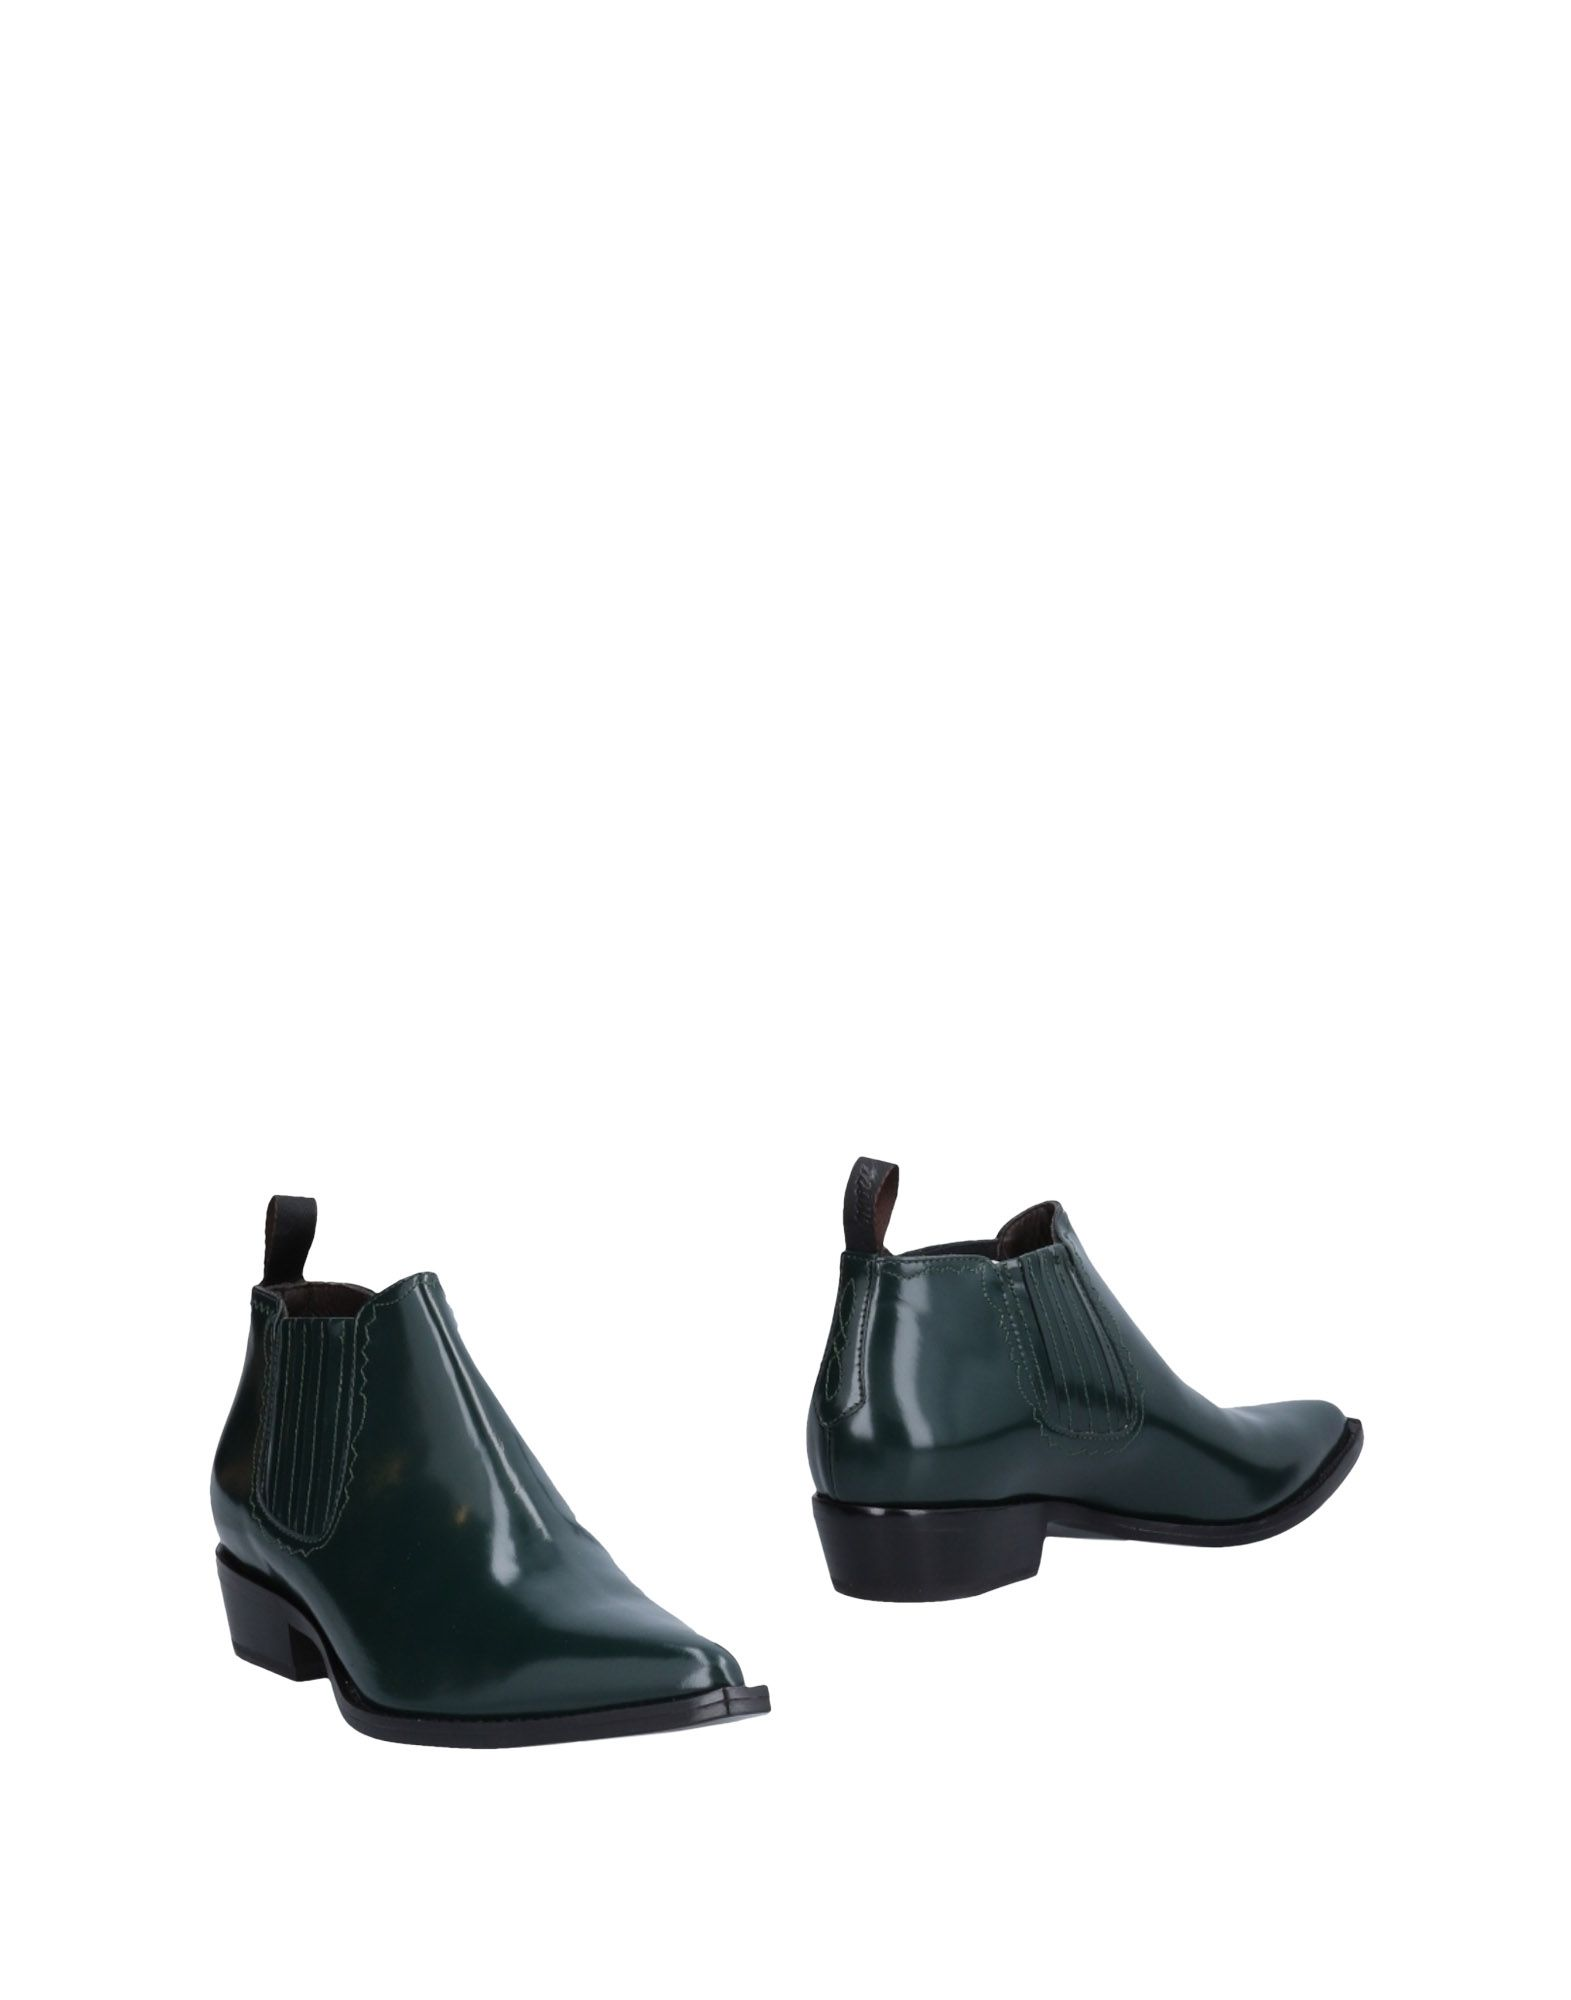 SONORA Ankle Boots in Dark Green